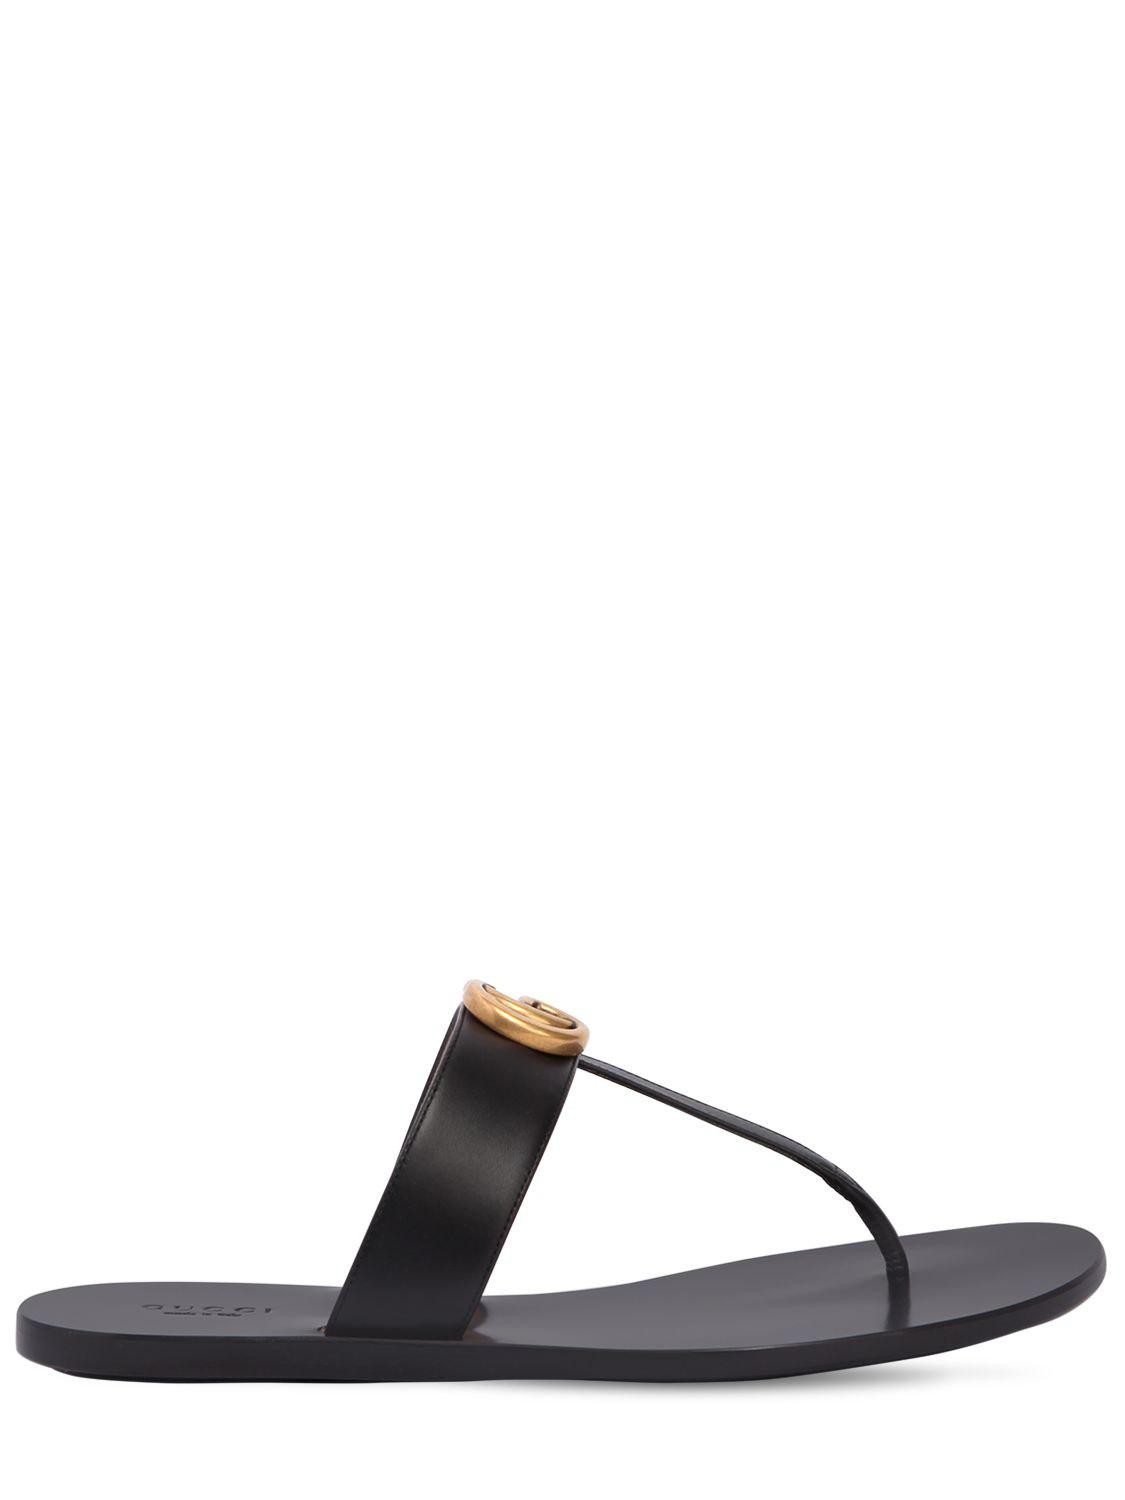 2b9bdabe9279 Lyst - Gucci 10mm Marmont Leather Thong Sandals in Black - Save 13%